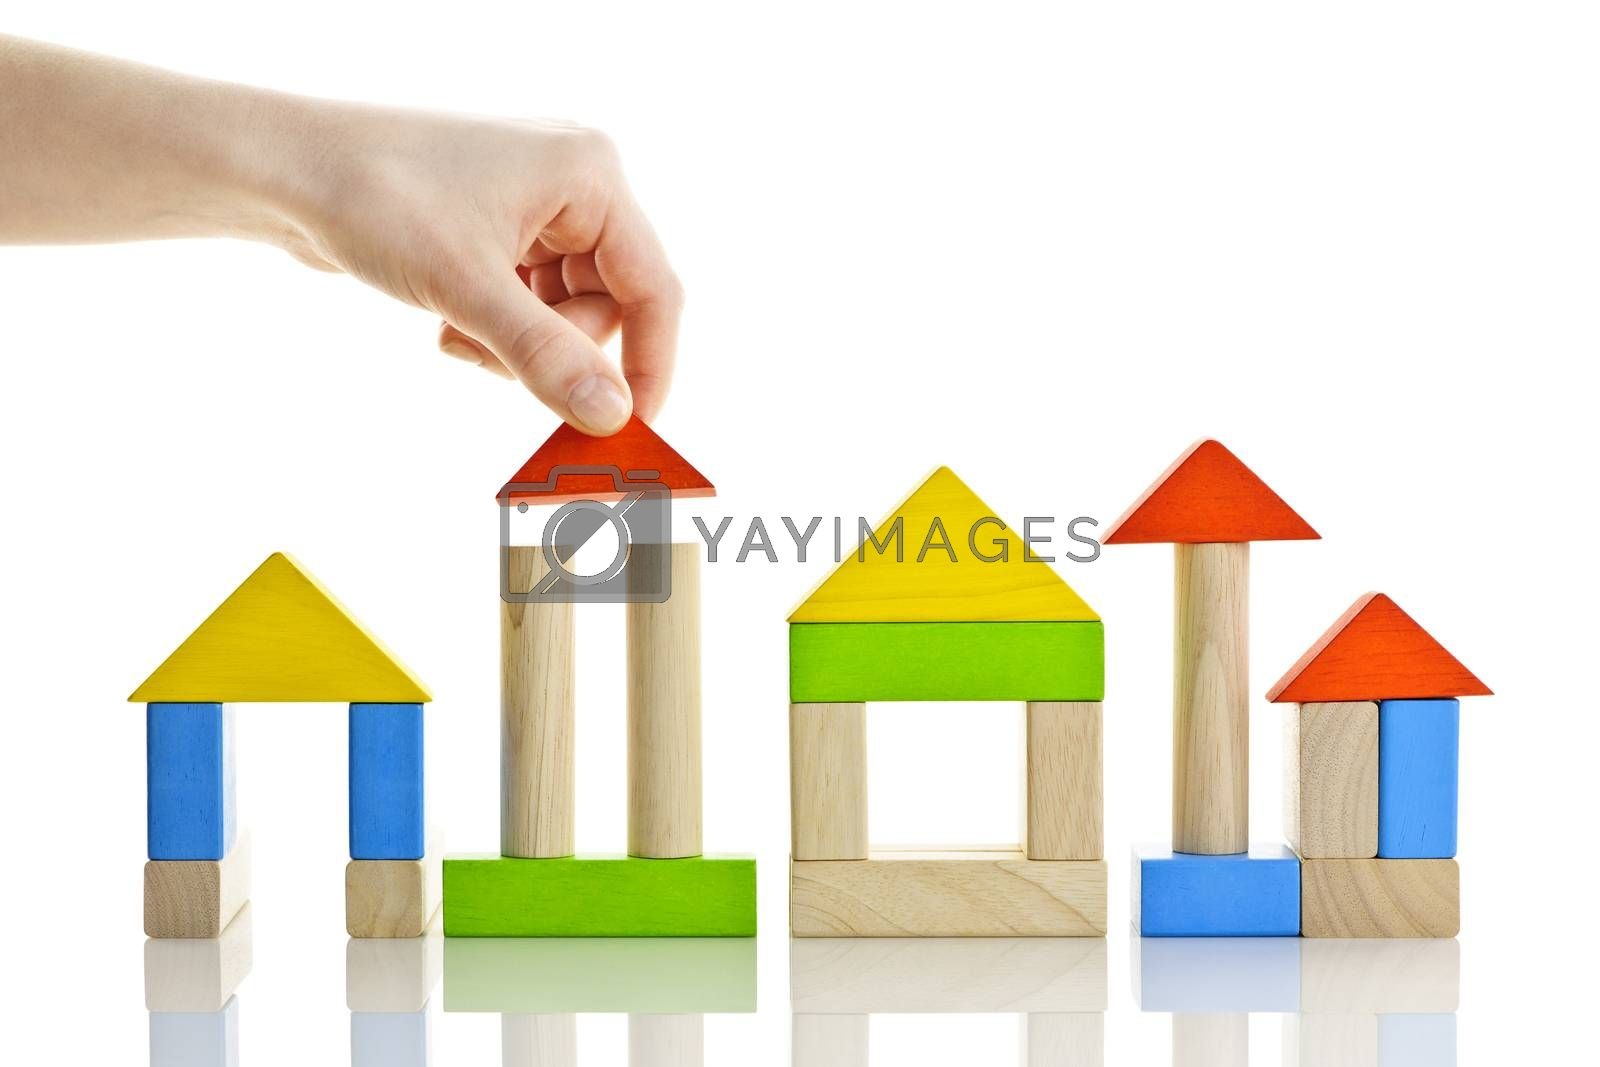 Hand building houses of wooden block toys isolated on white background